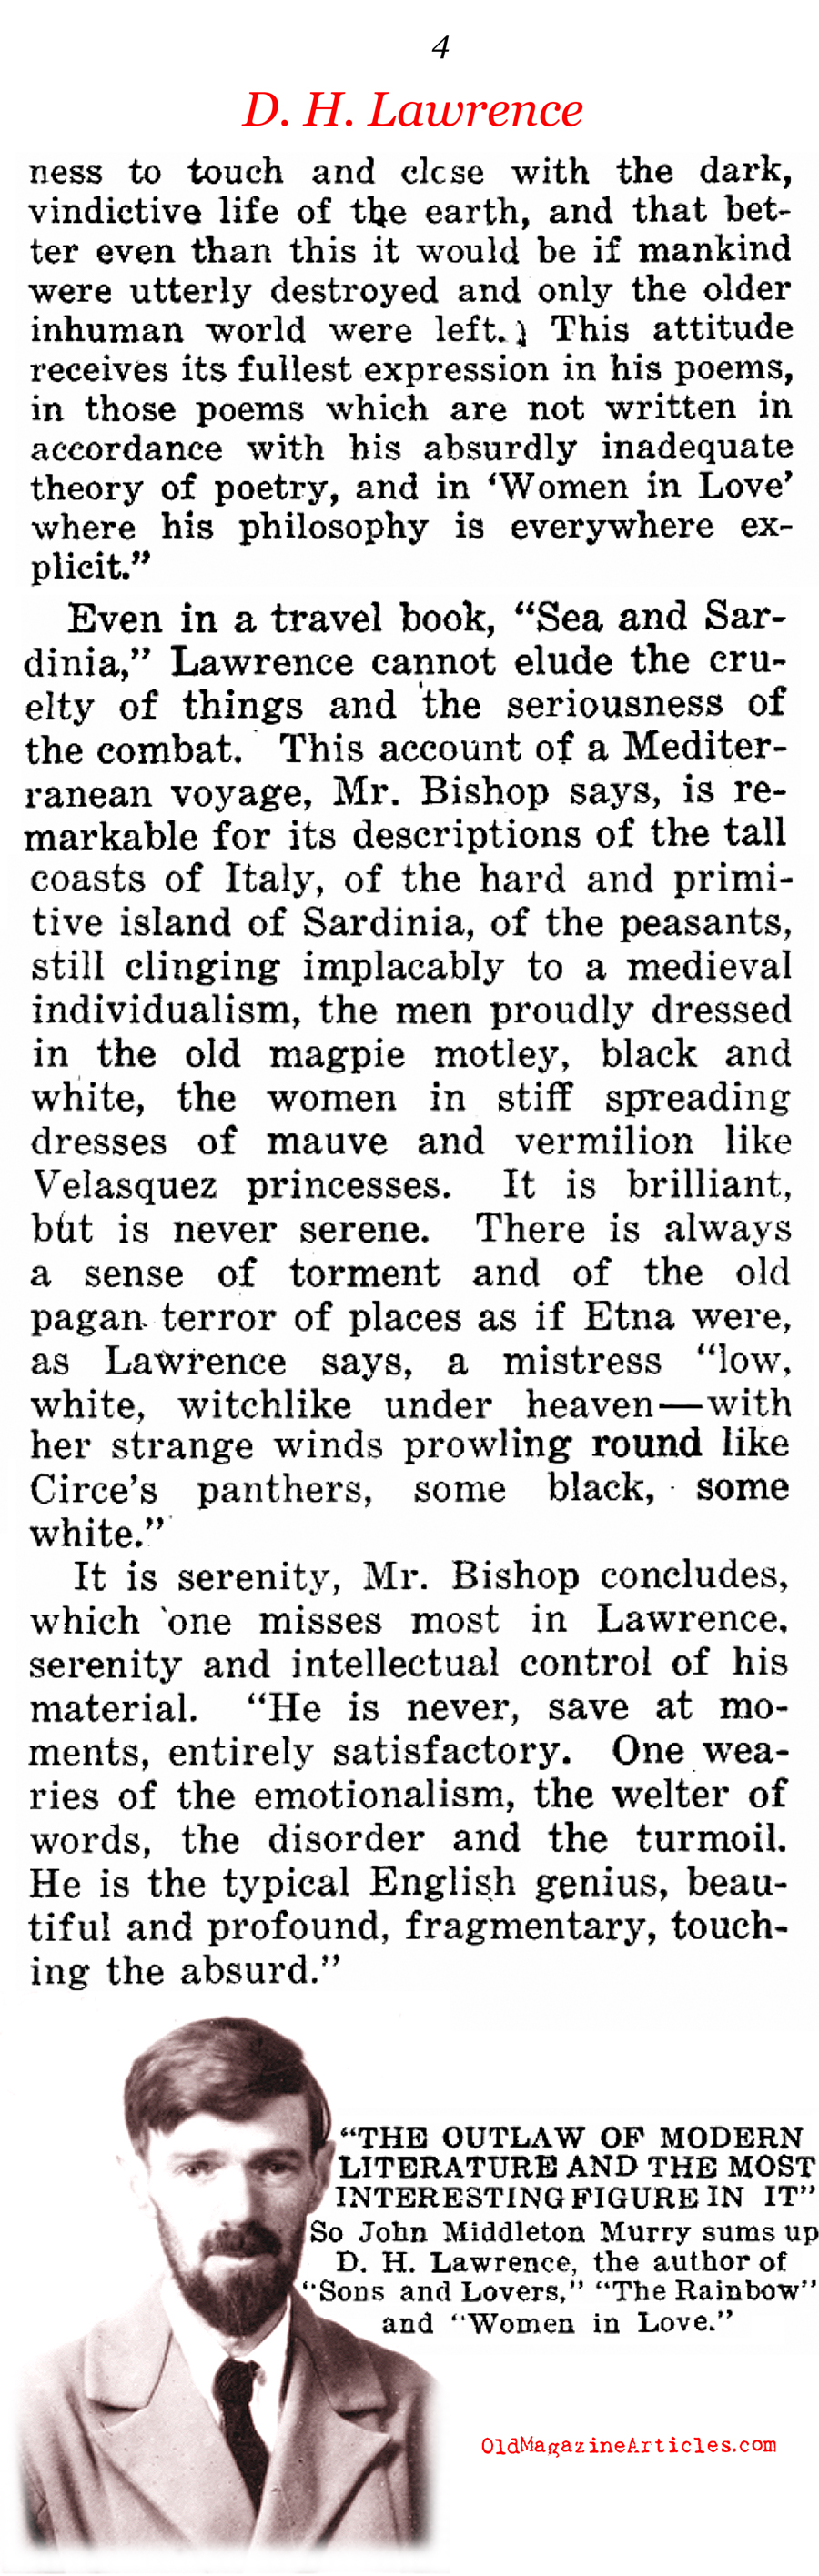 D.H. Lawrence's Genius (Current Opinion, 1922)